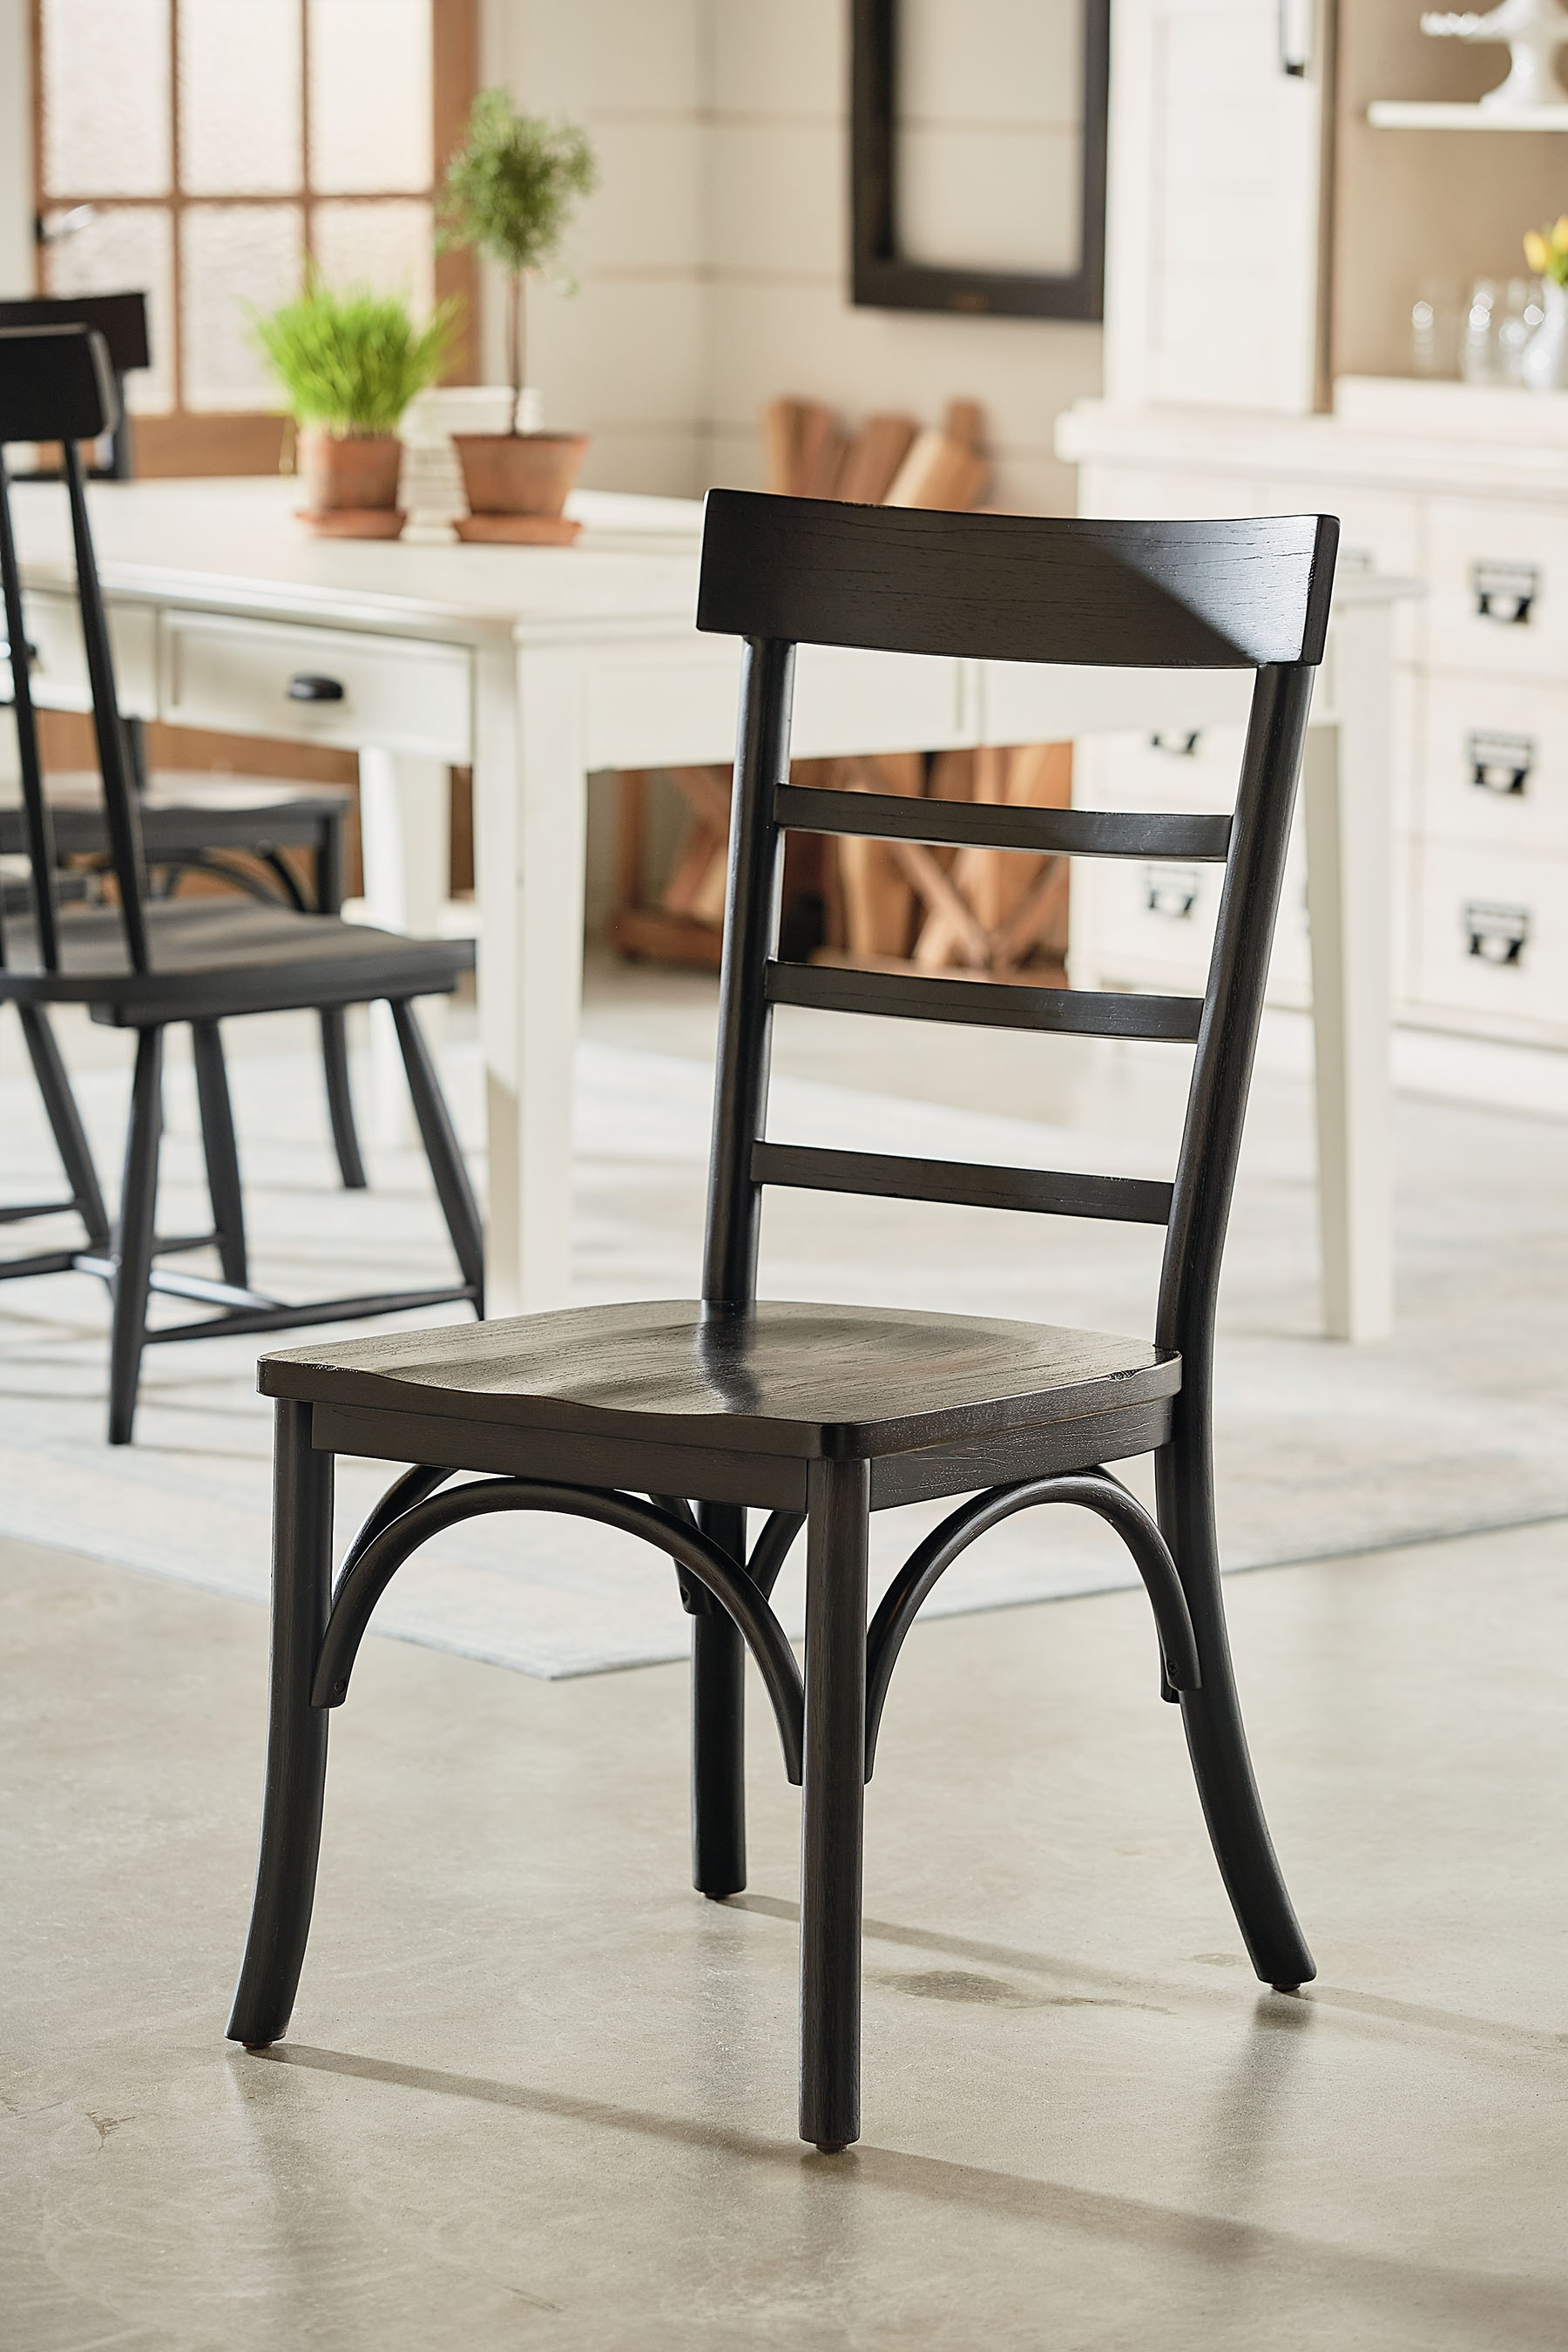 Widely Used Magnolia Home Harper Patina Side Chairs With Regard To Harper Side Chair – Magnolia Home (View 8 of 20)